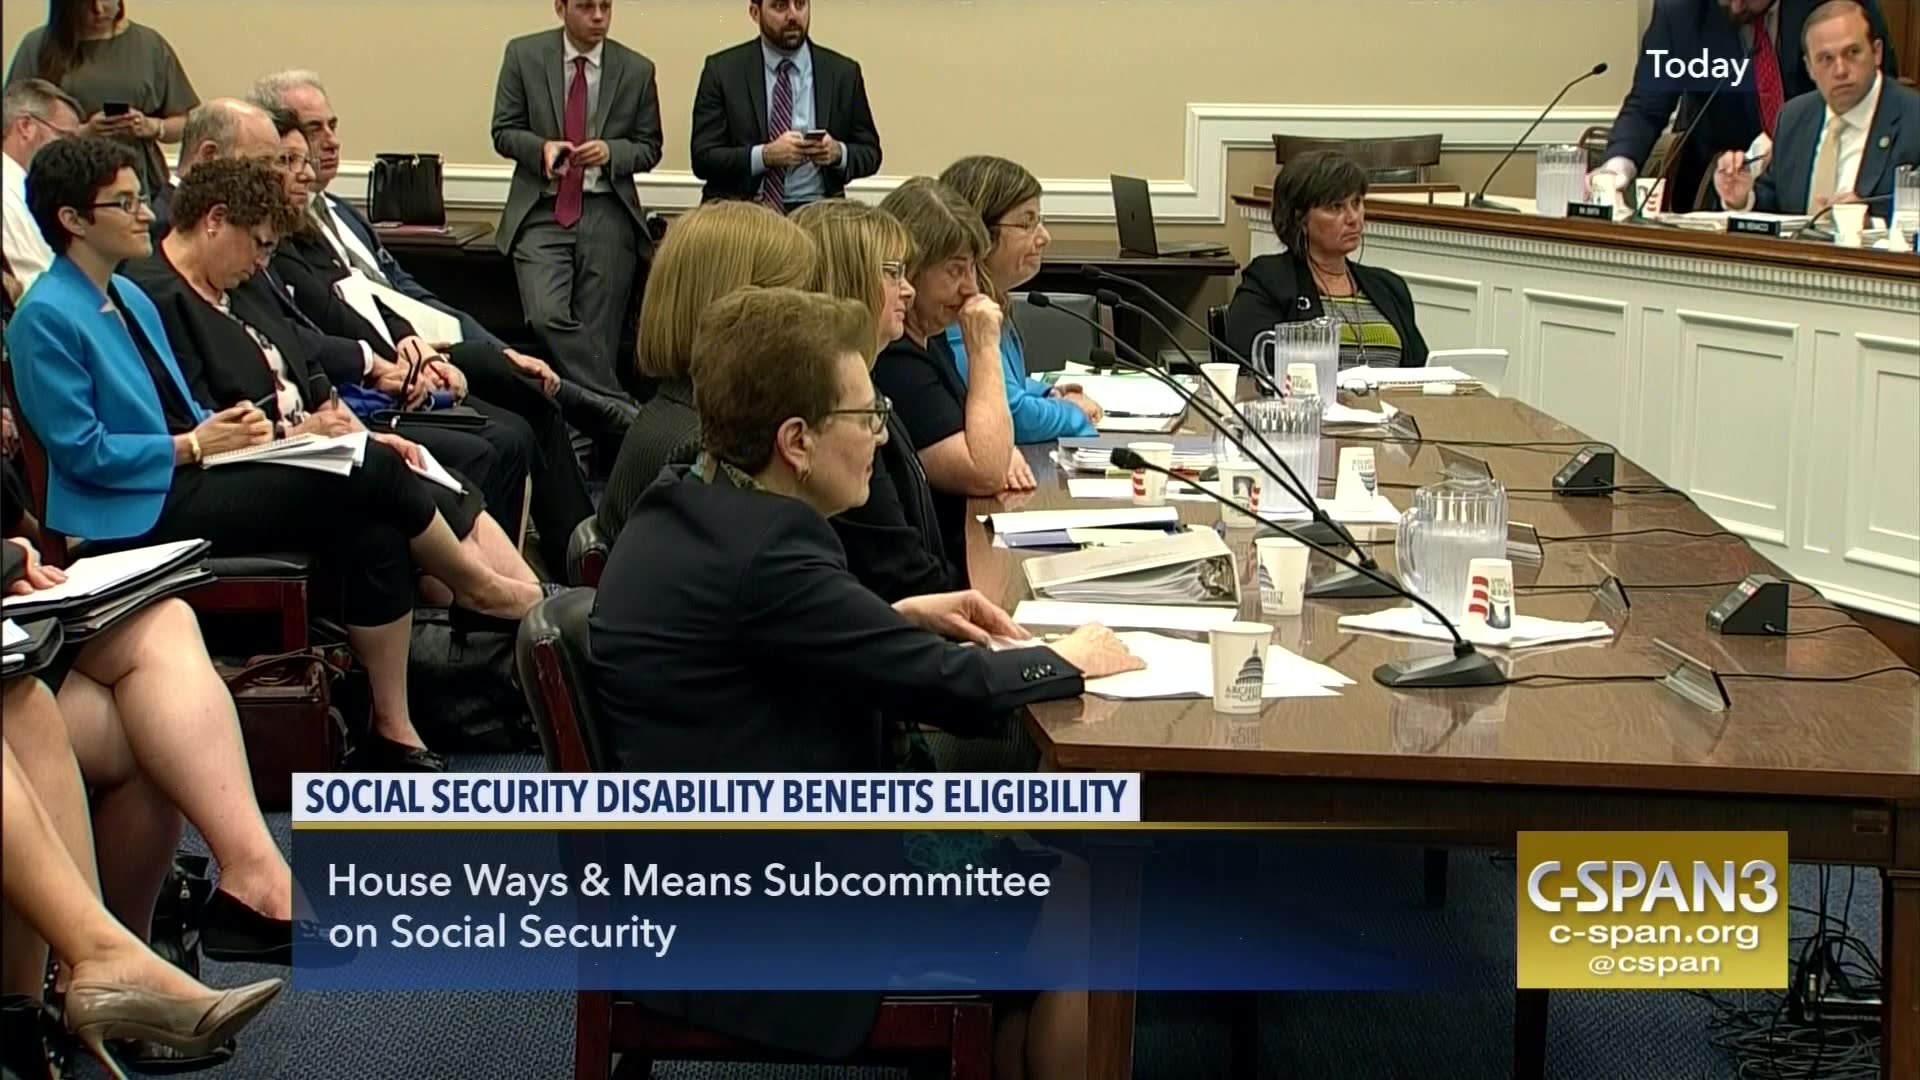 Lawmakers Social Security Disability Benefit Eligibility, Sep 6 2017 |  C-SPAN.org